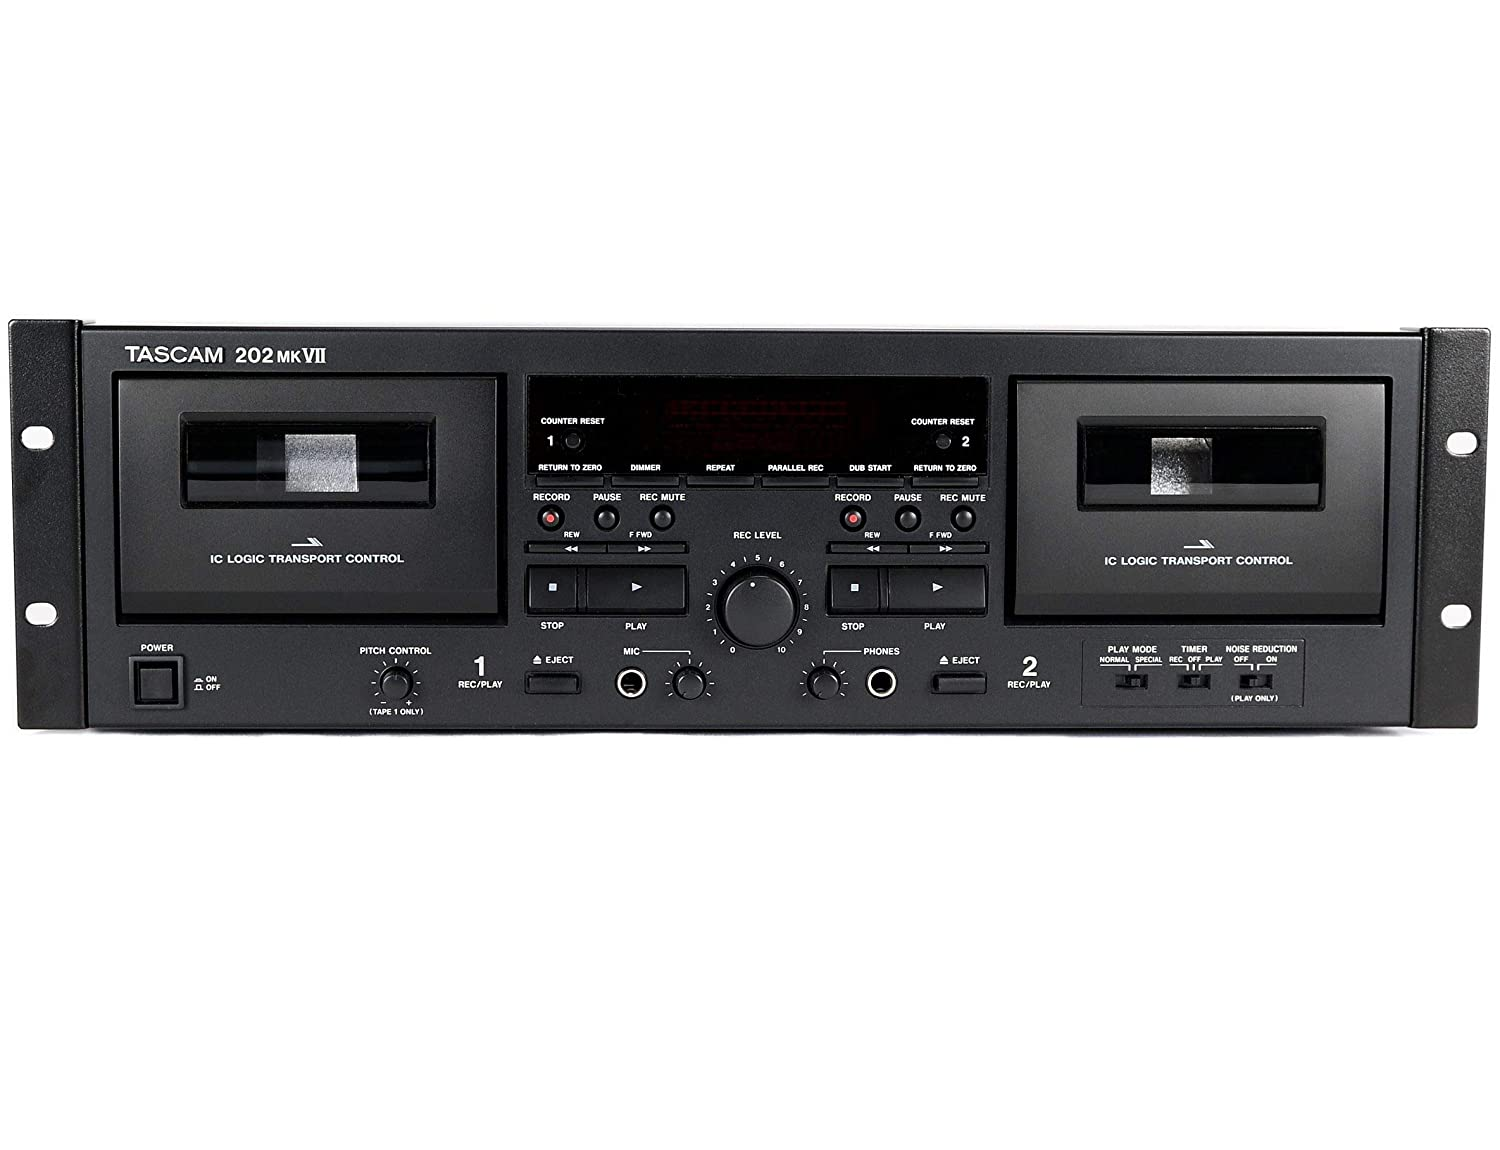 Amazon.com: Tascam 202MKVII Double Cassette Recorder Deck with USB Port: Musical Instruments